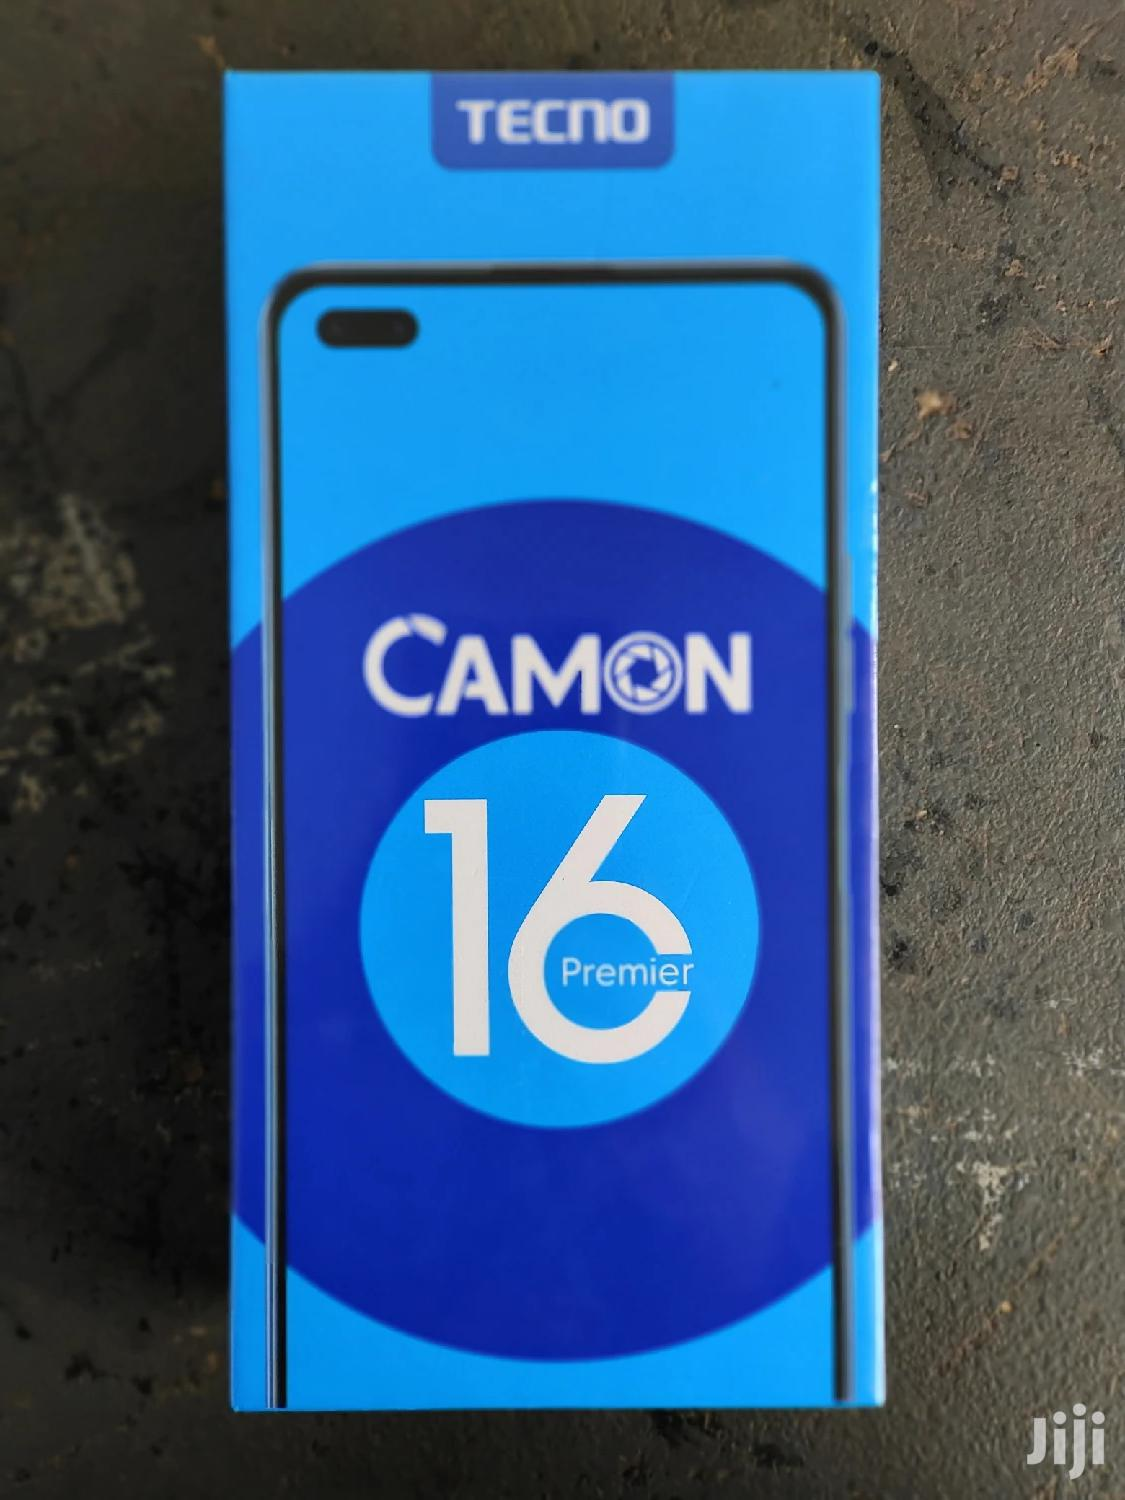 New Tecno Camon 16 Premier 128GB Silver | Mobile Phones for sale in Kabalore, Western Region, Uganda